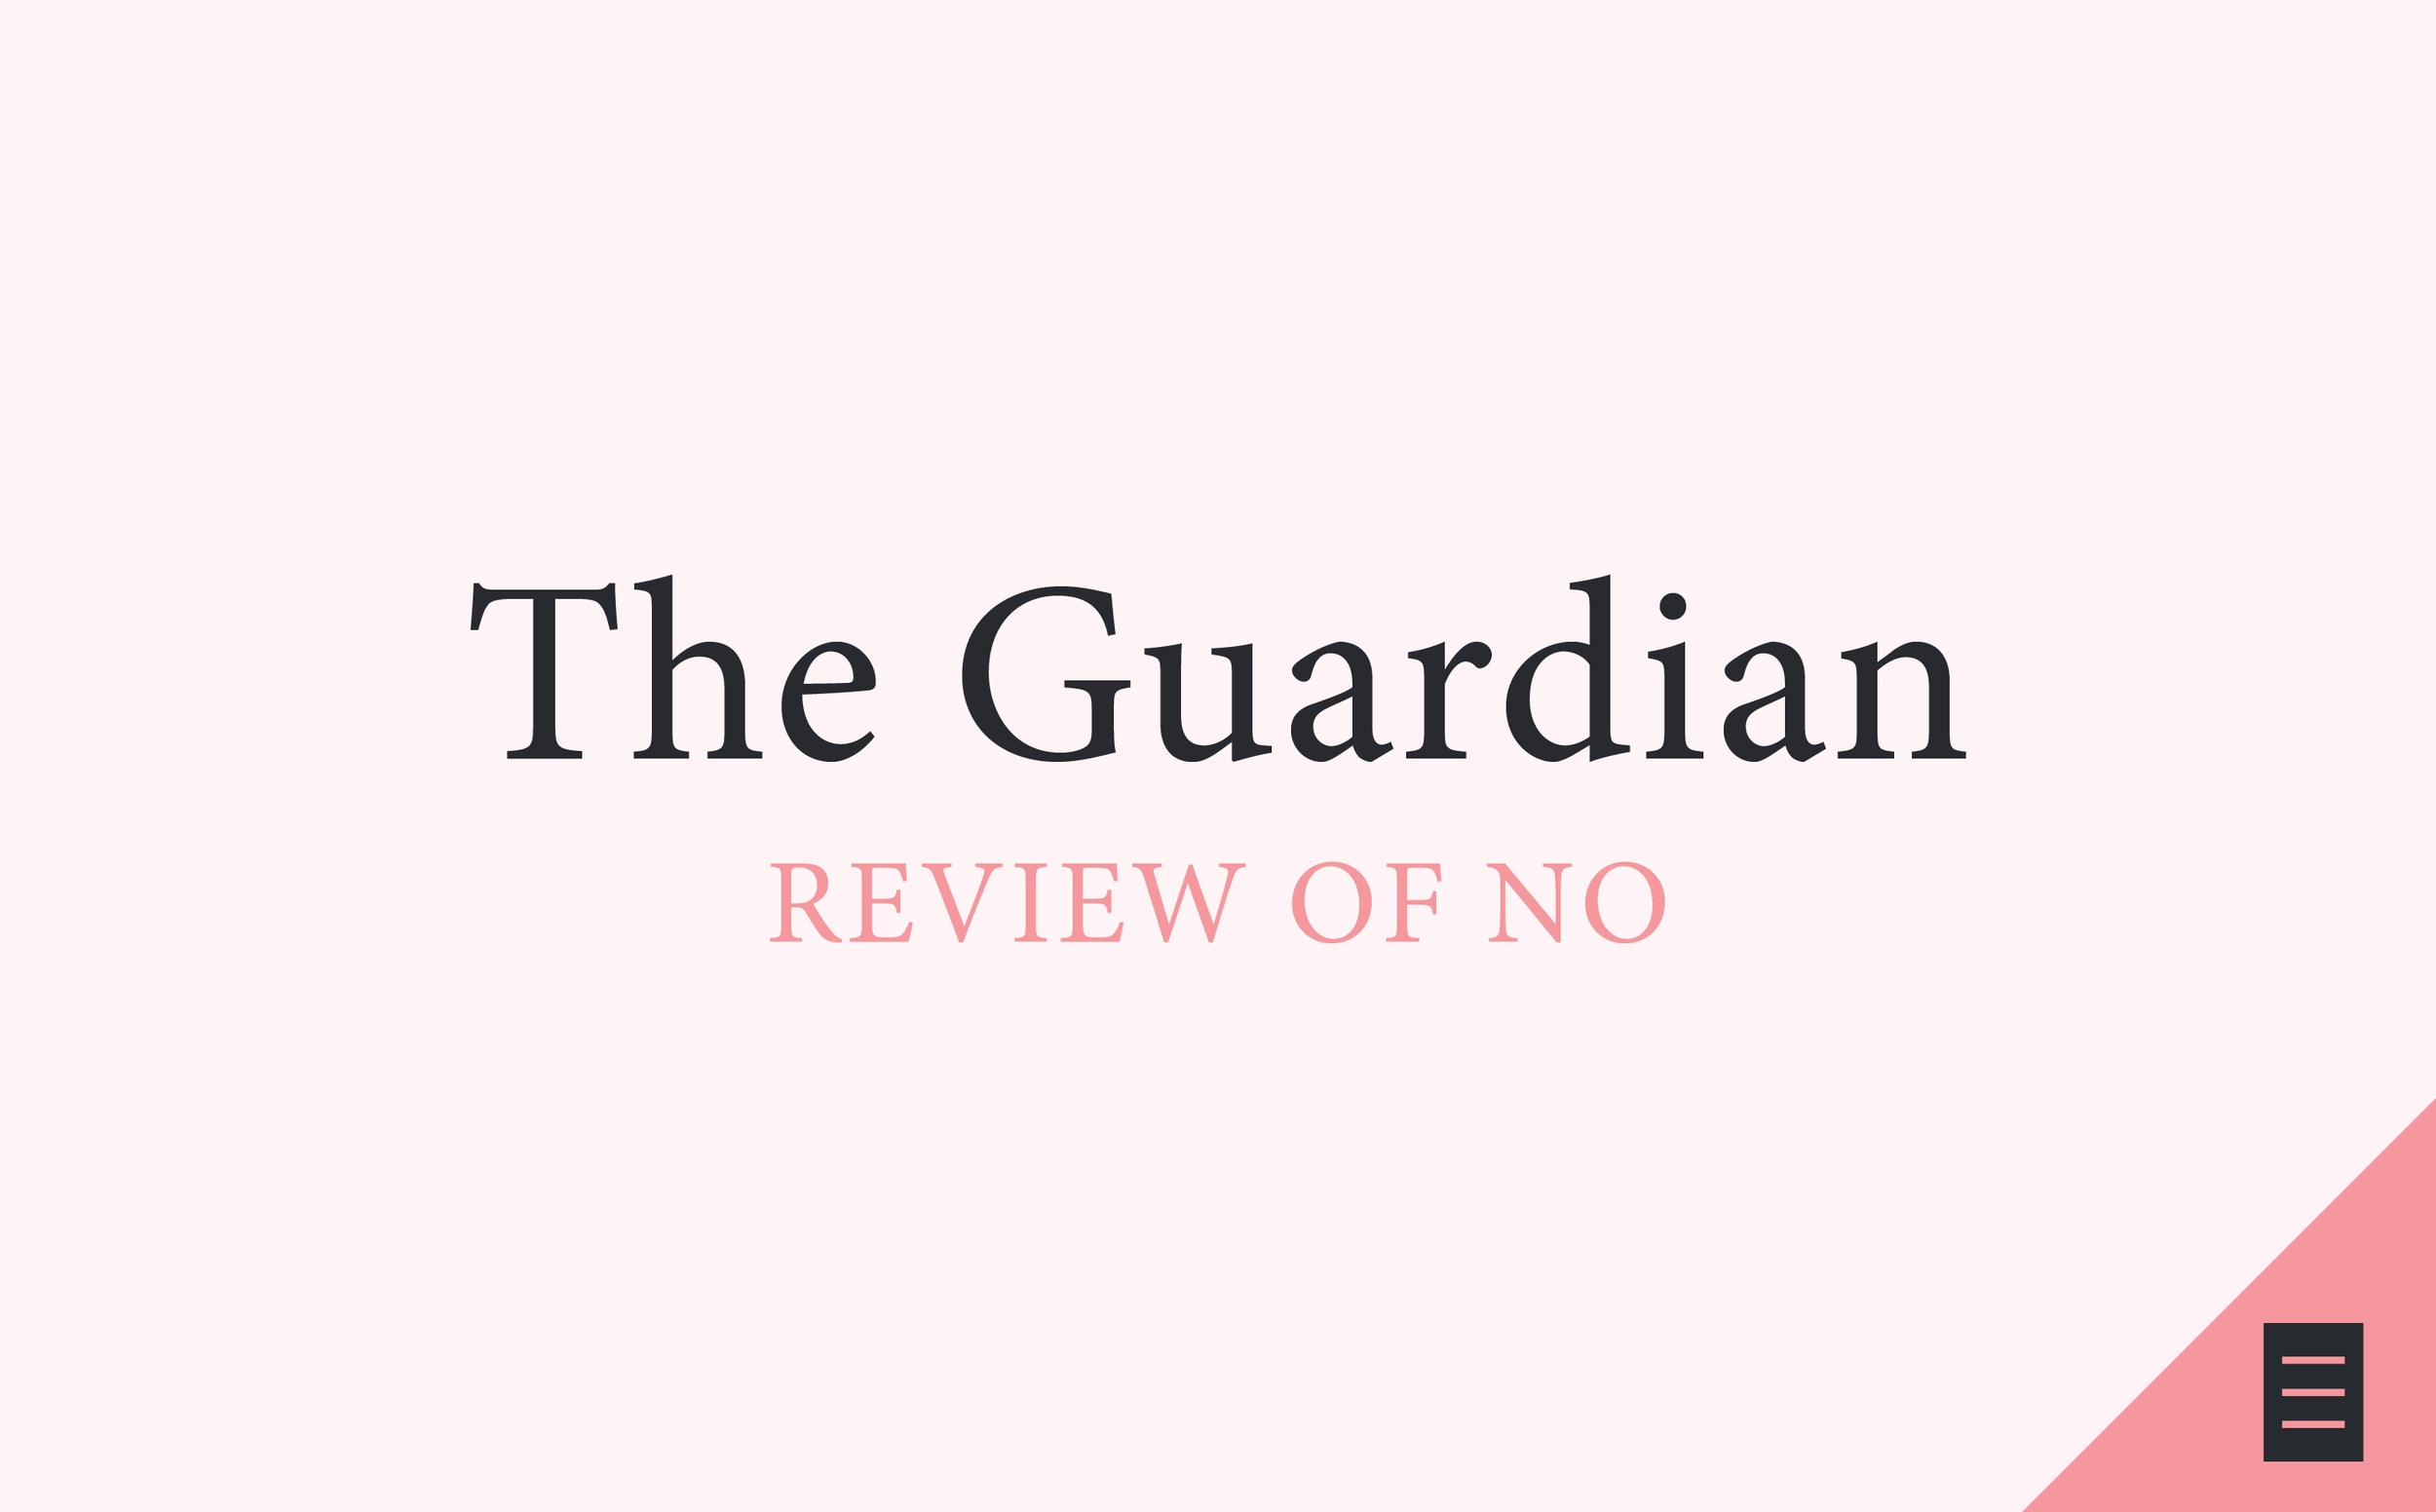 the guardian, the heart, review of no